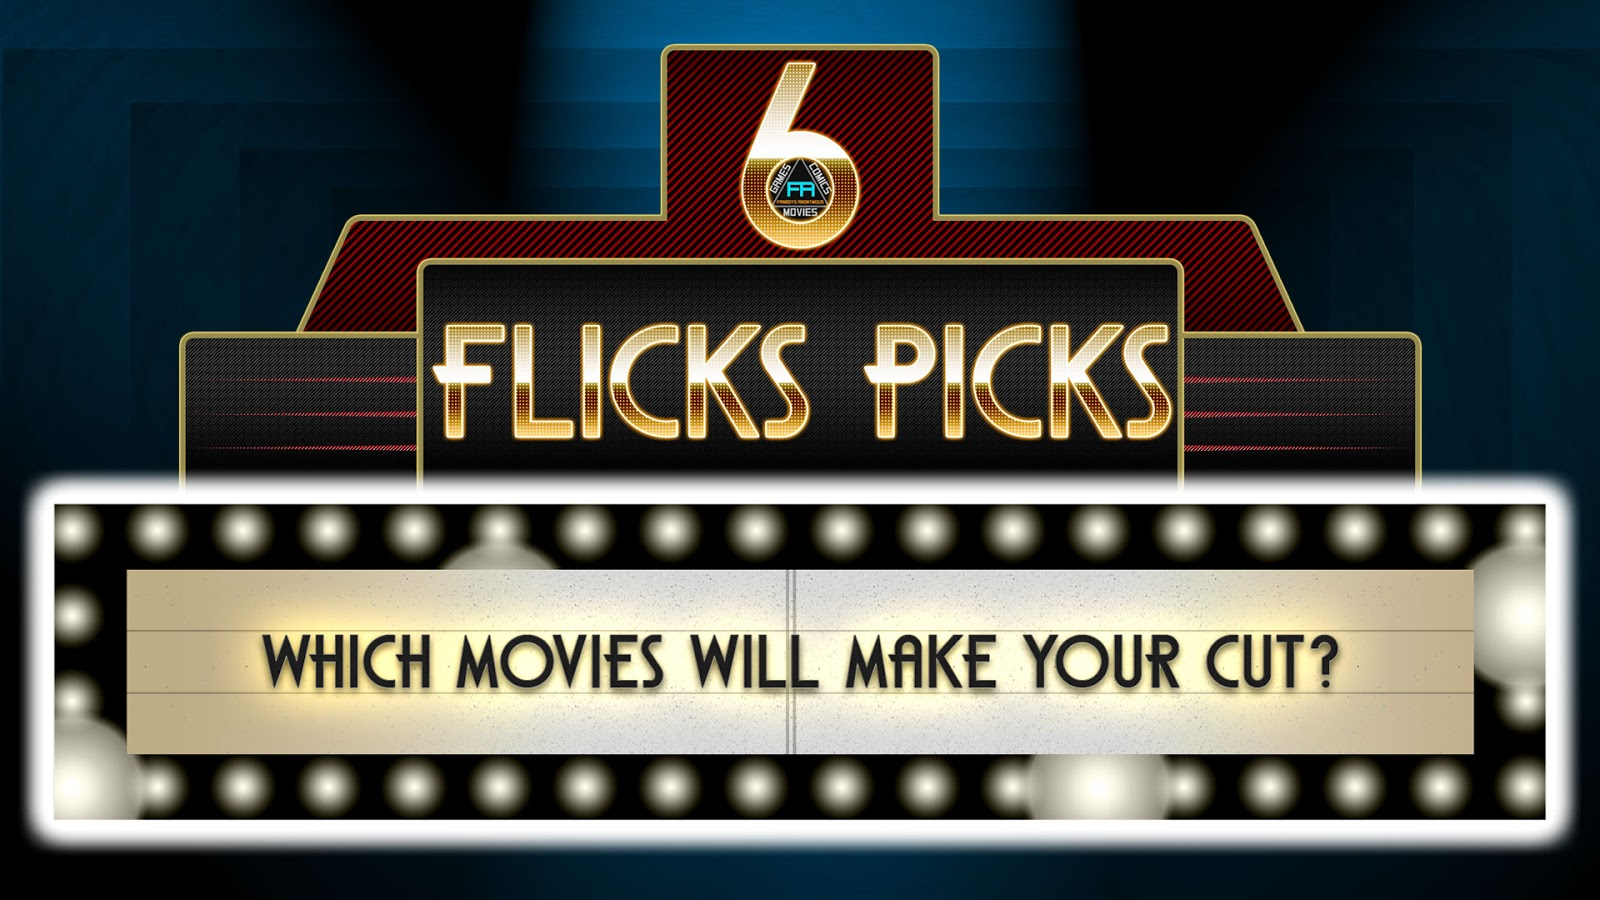 What movies are coming out September 2016 6 Flicks Picks